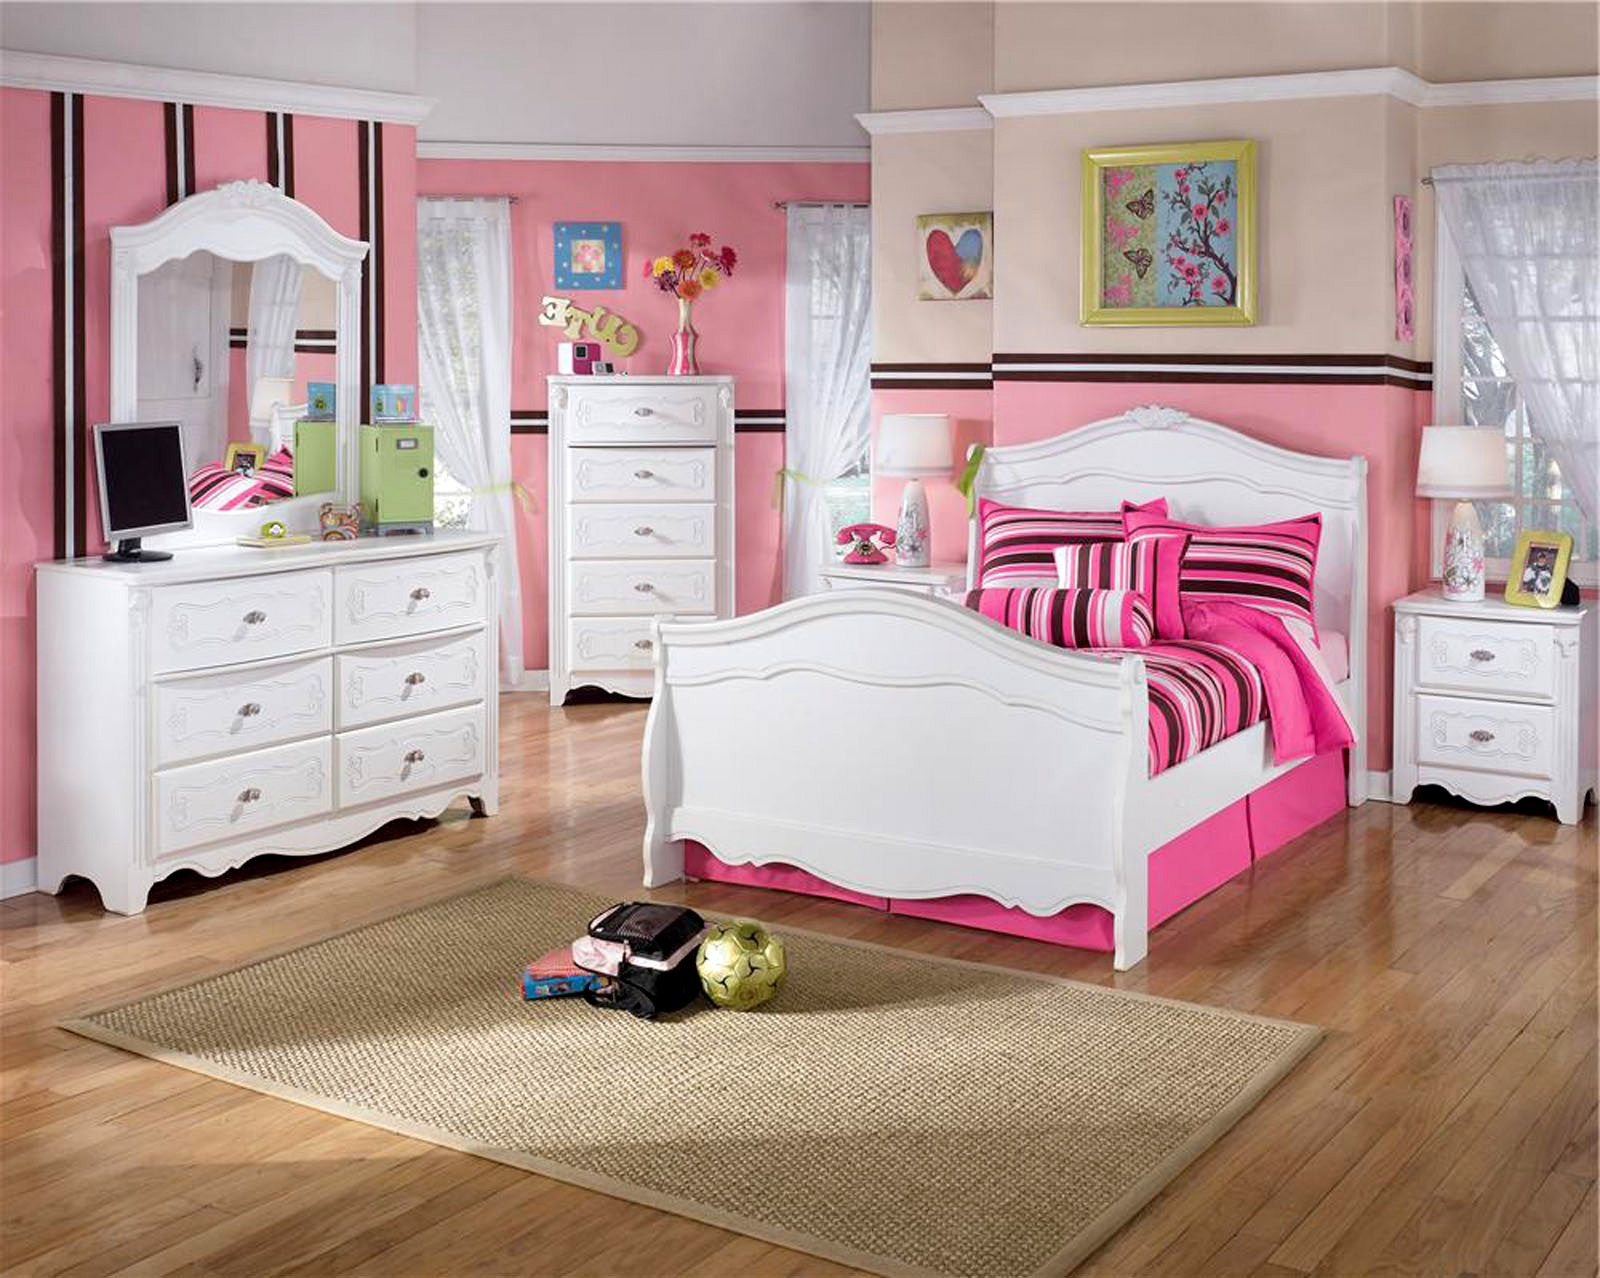 Girly Twin Bedroom Set Idea with Pretty White Sleigh Bed and Two ...